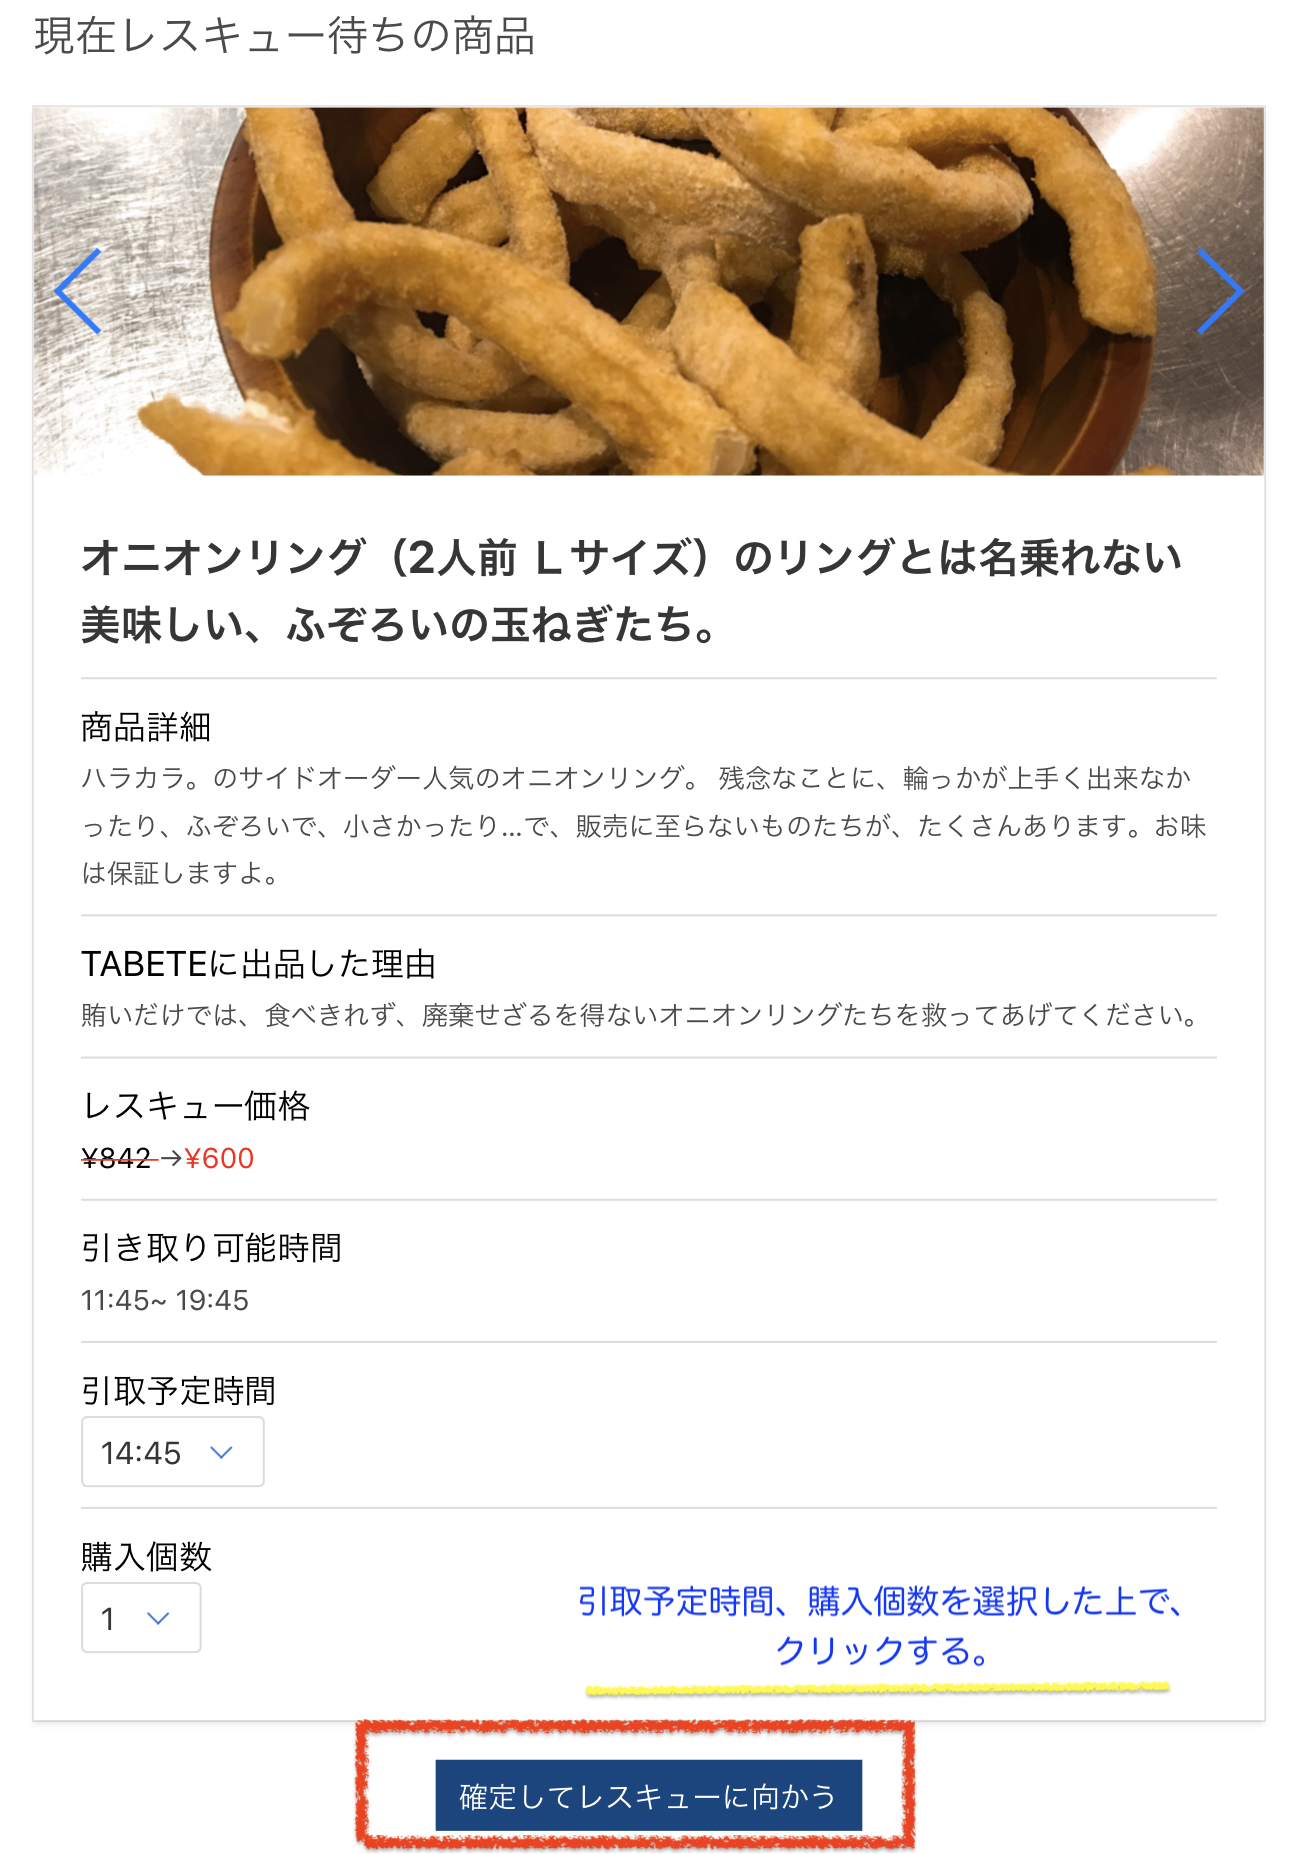 TABETE サービスの利用の仕方②